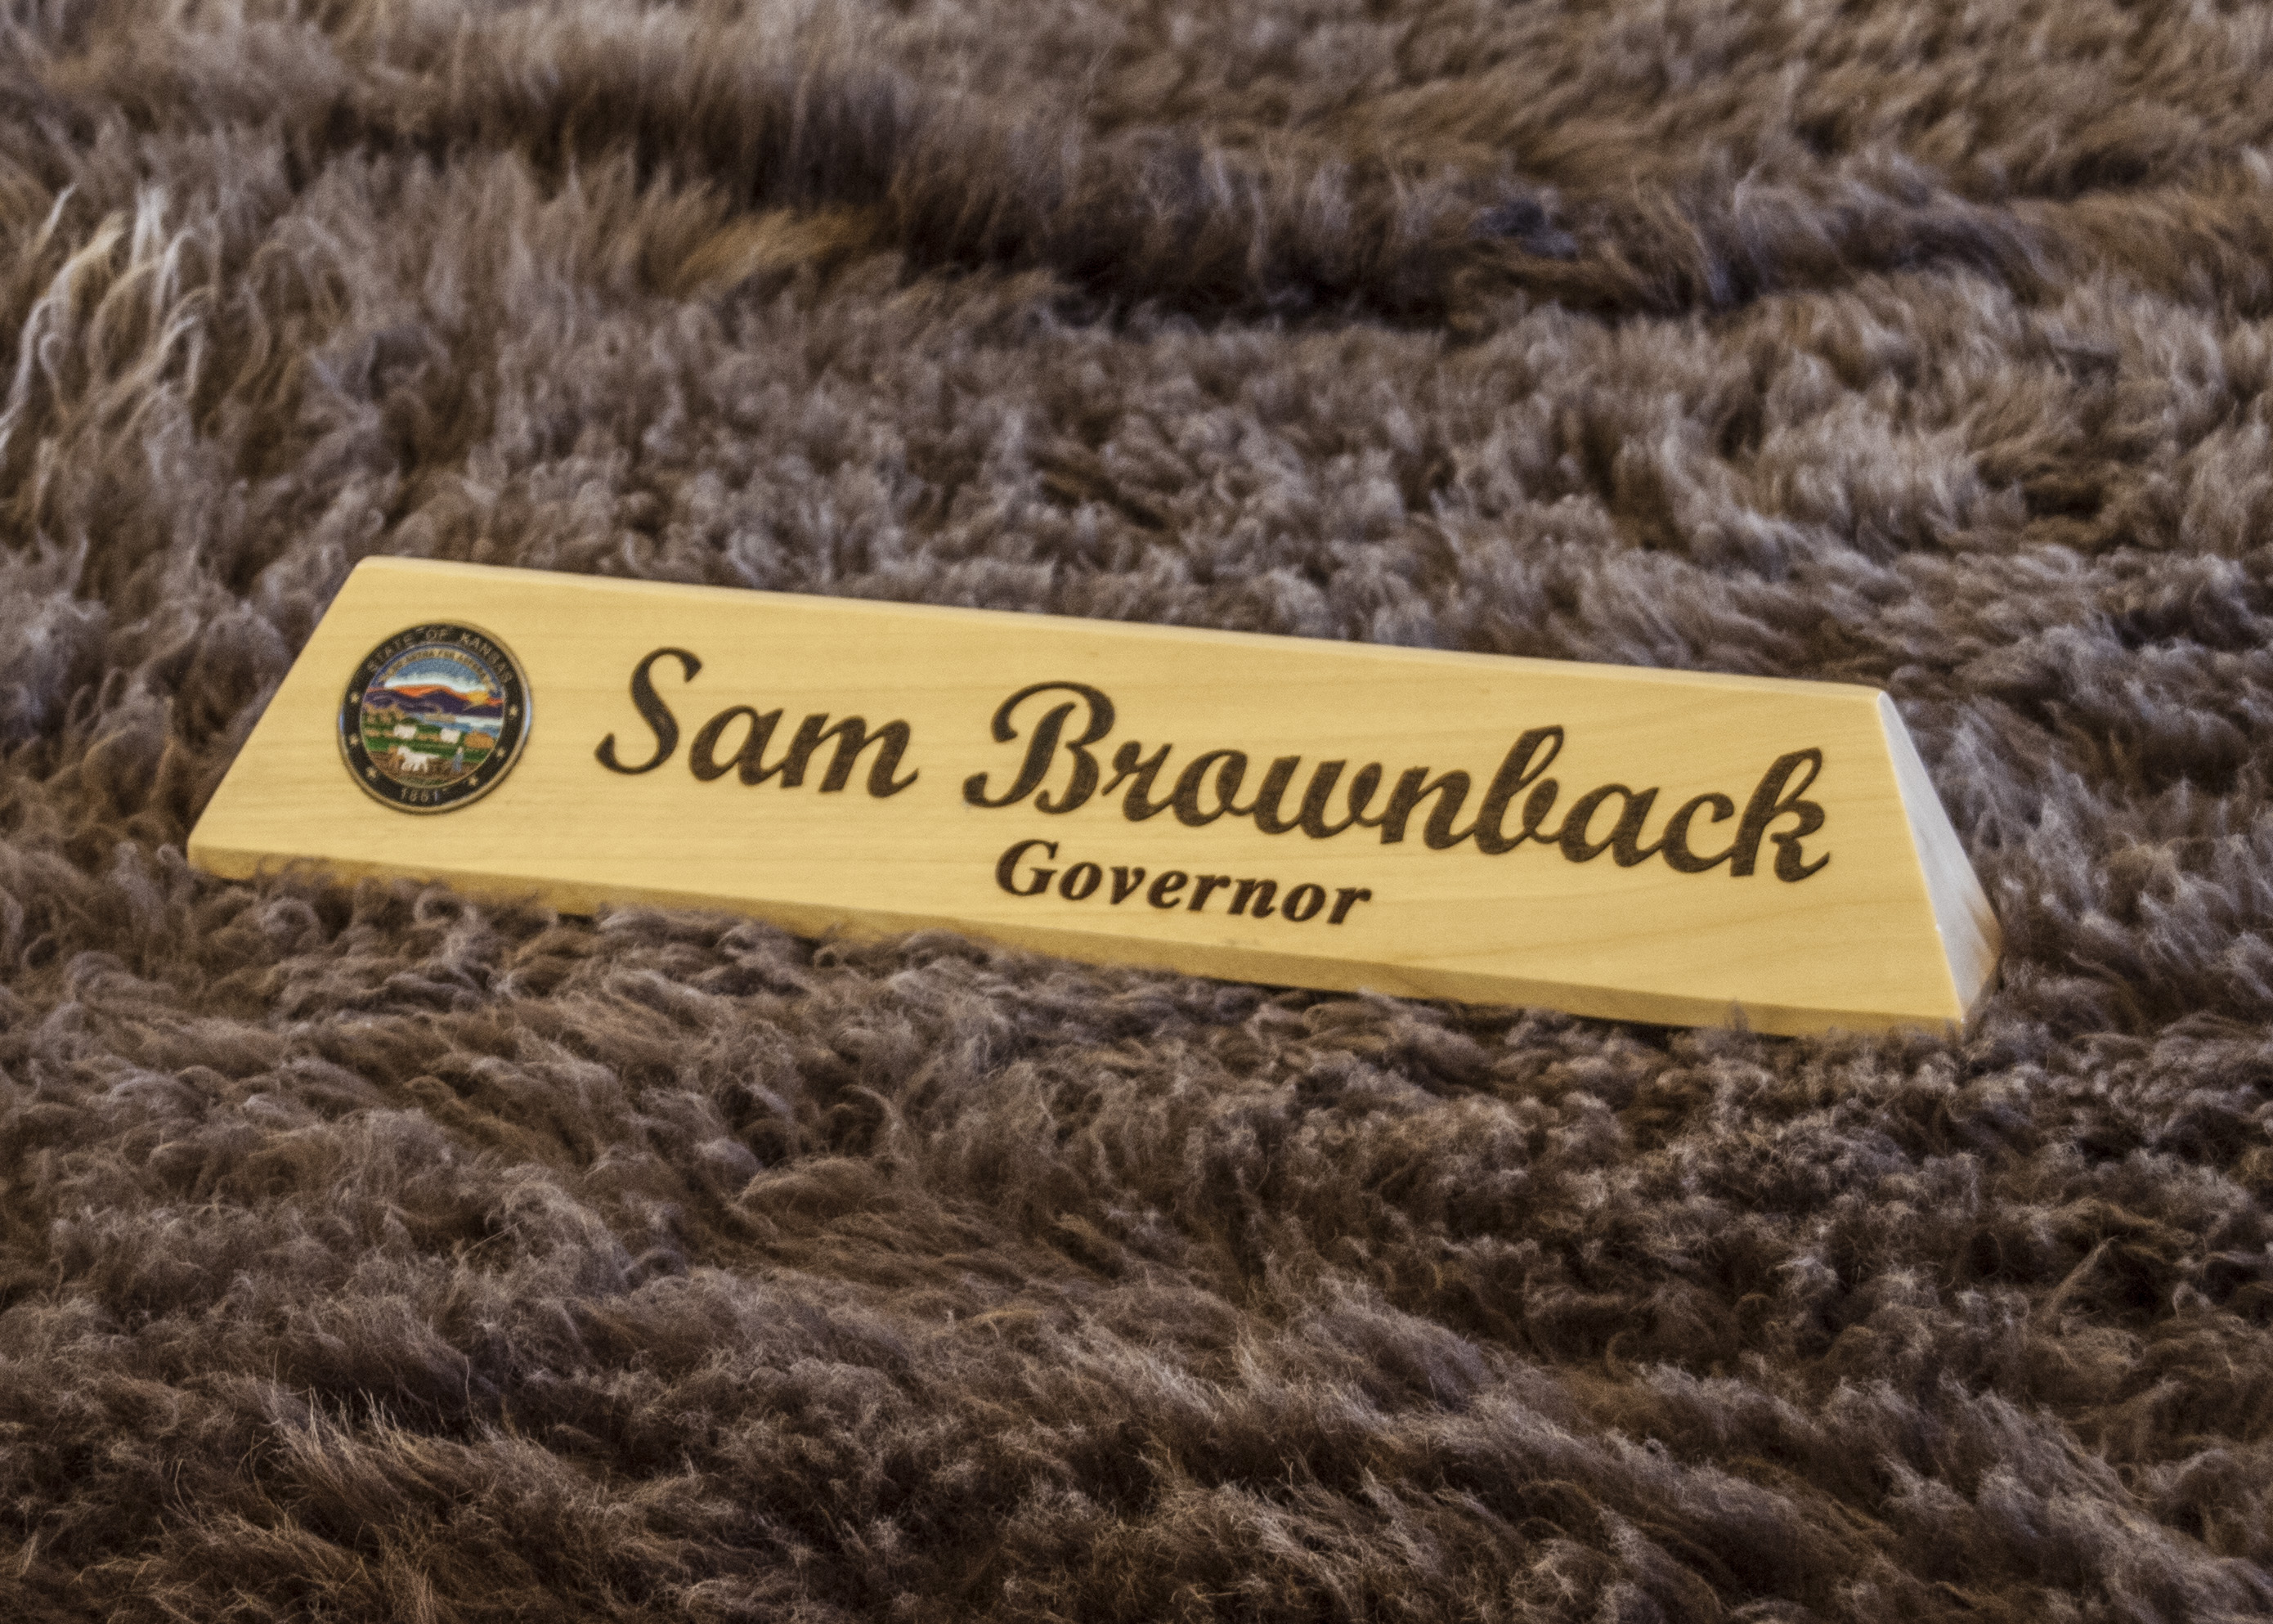 Name plate inside Governor Sam Brownback's office at the Kansas Statehouse.  (Photo by Dan Skinner)